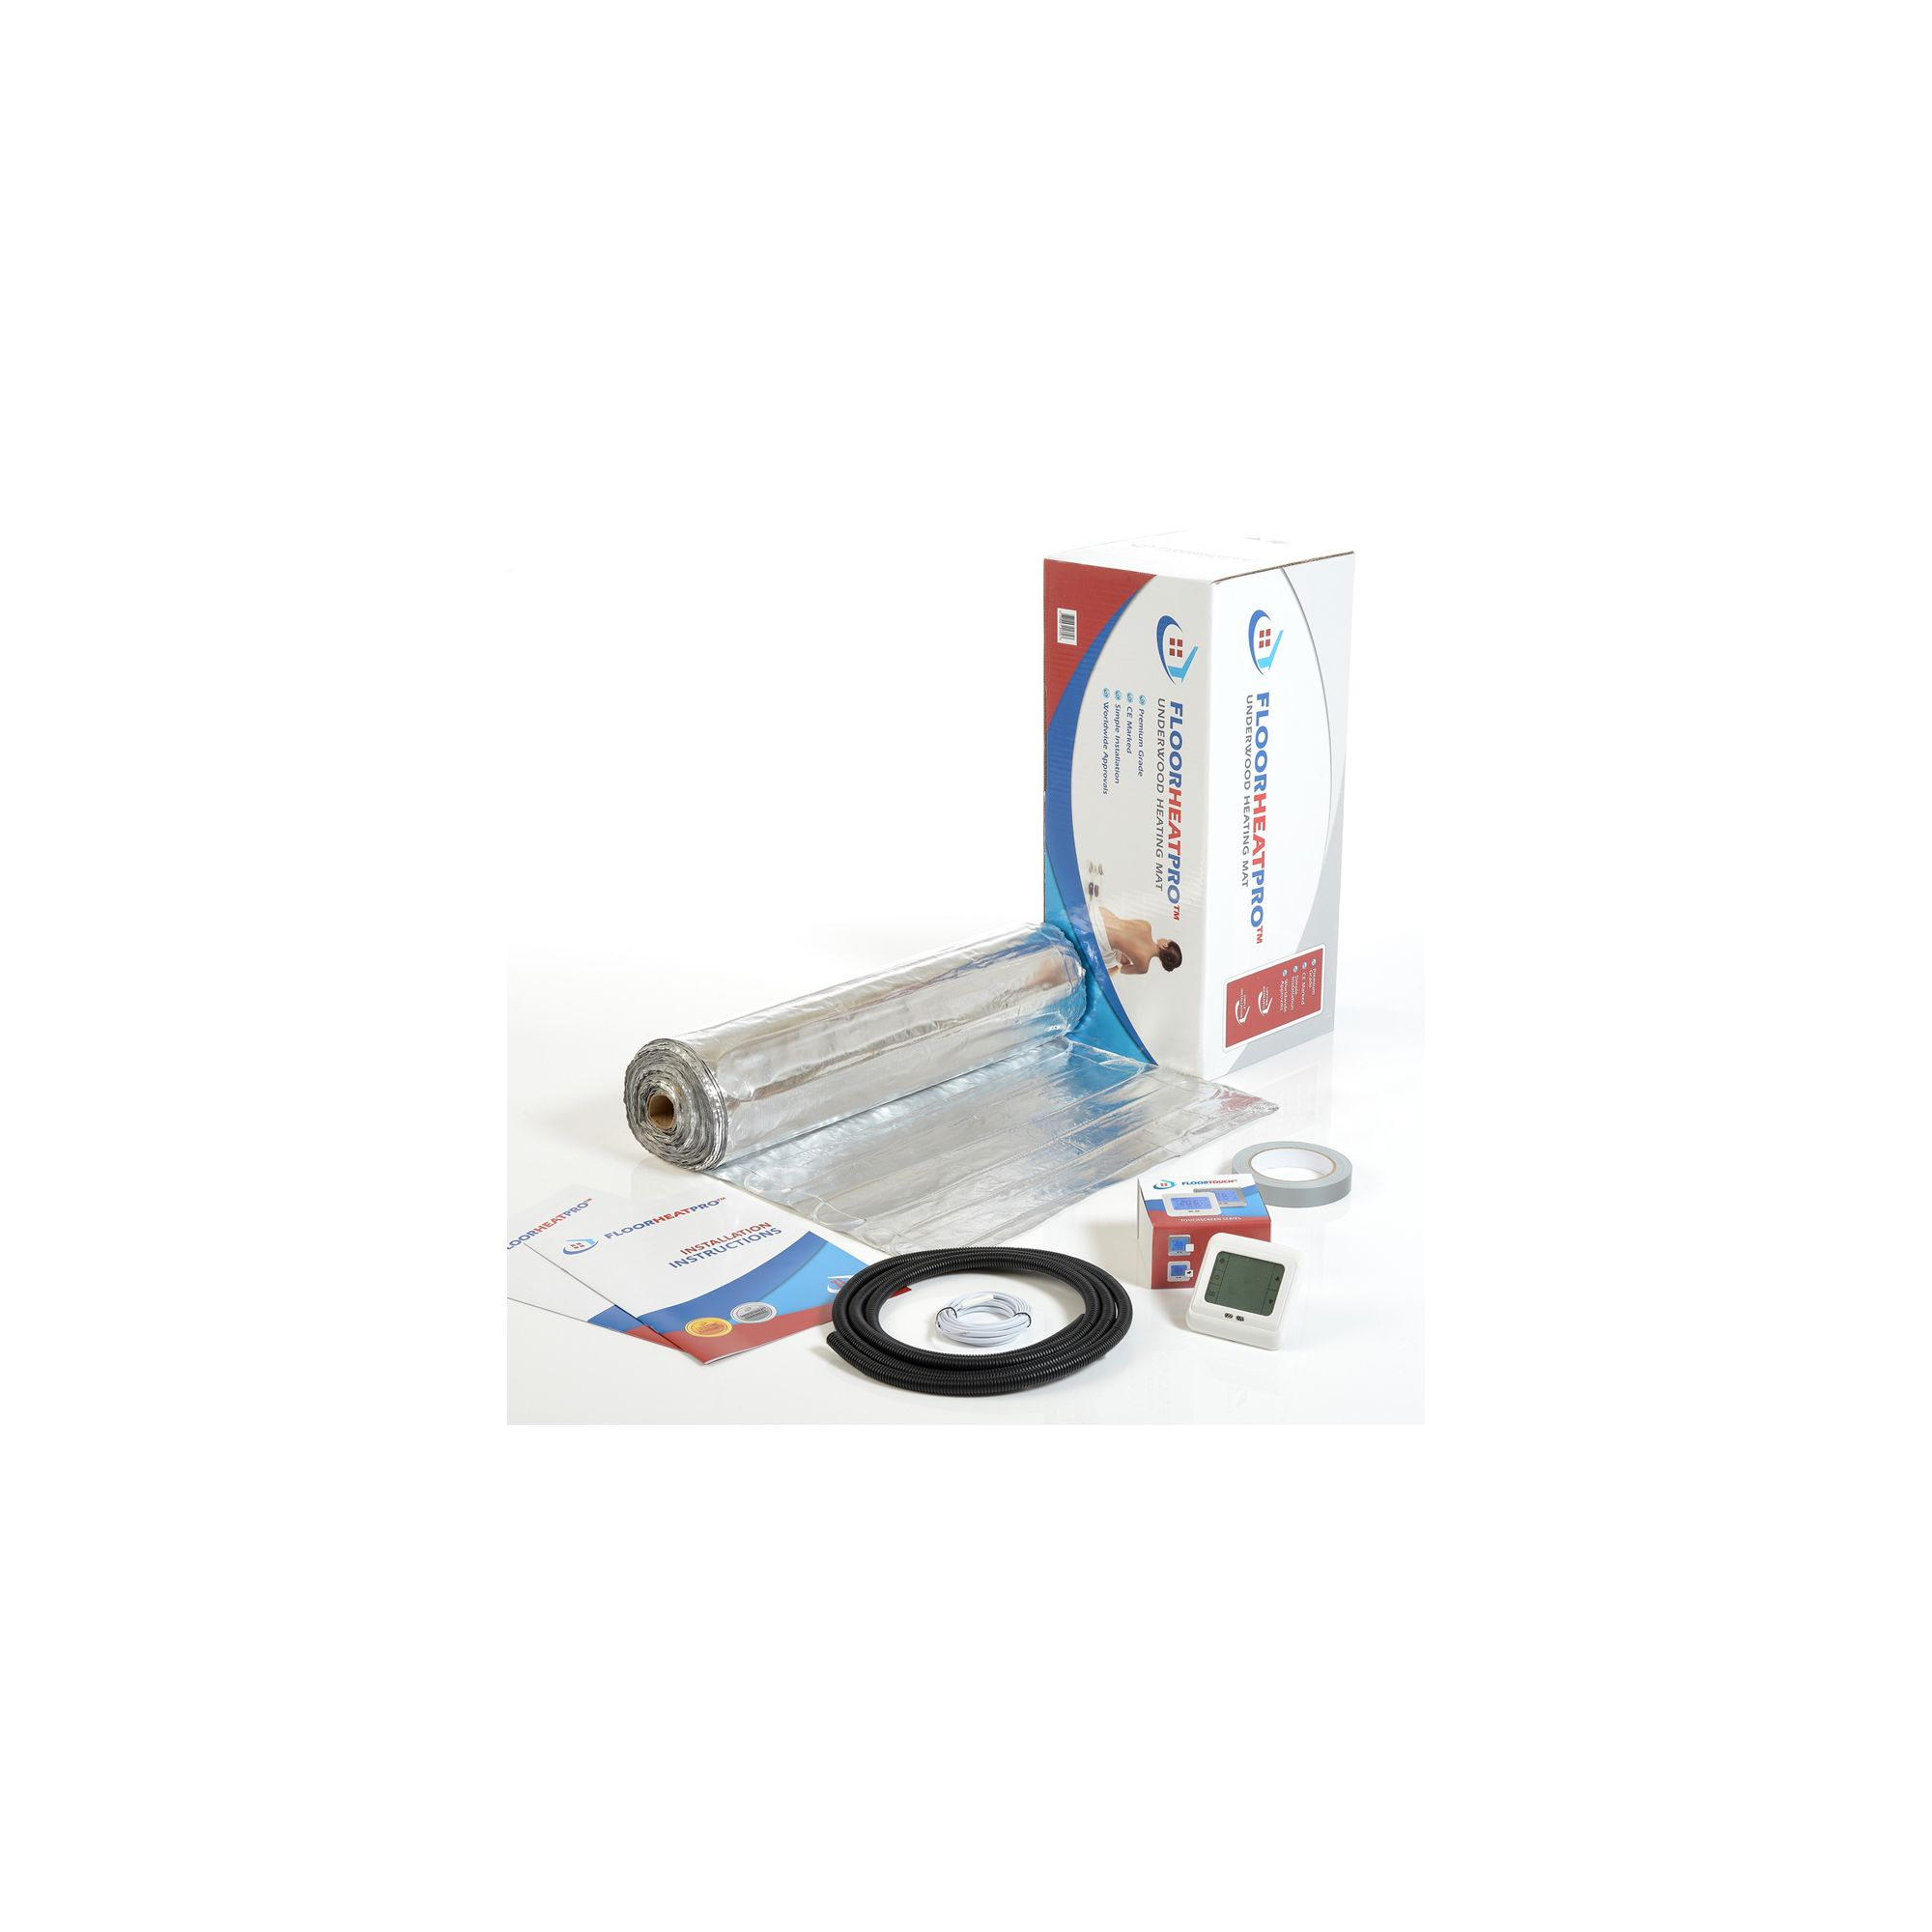 13.0 m2 - Underfloor Electric Heating Kit - Laminate at Tesco Direct